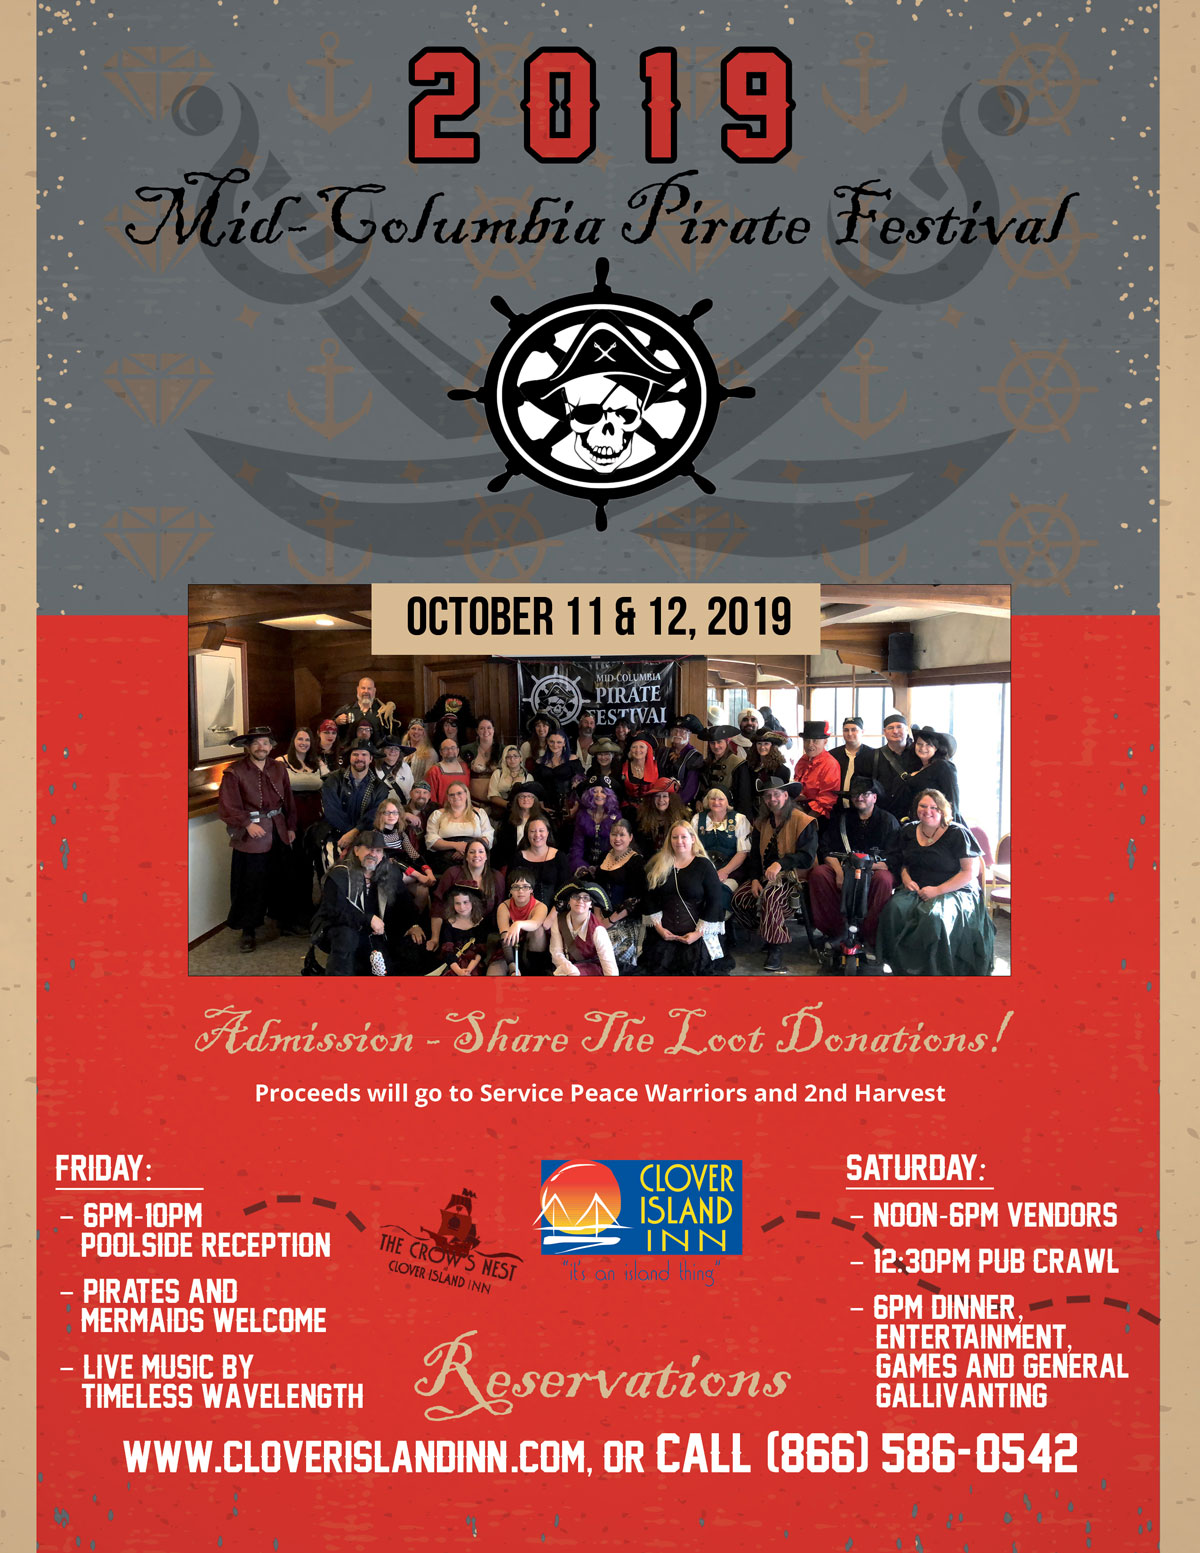 Mid-Columbia-Pirate-Festival 2019